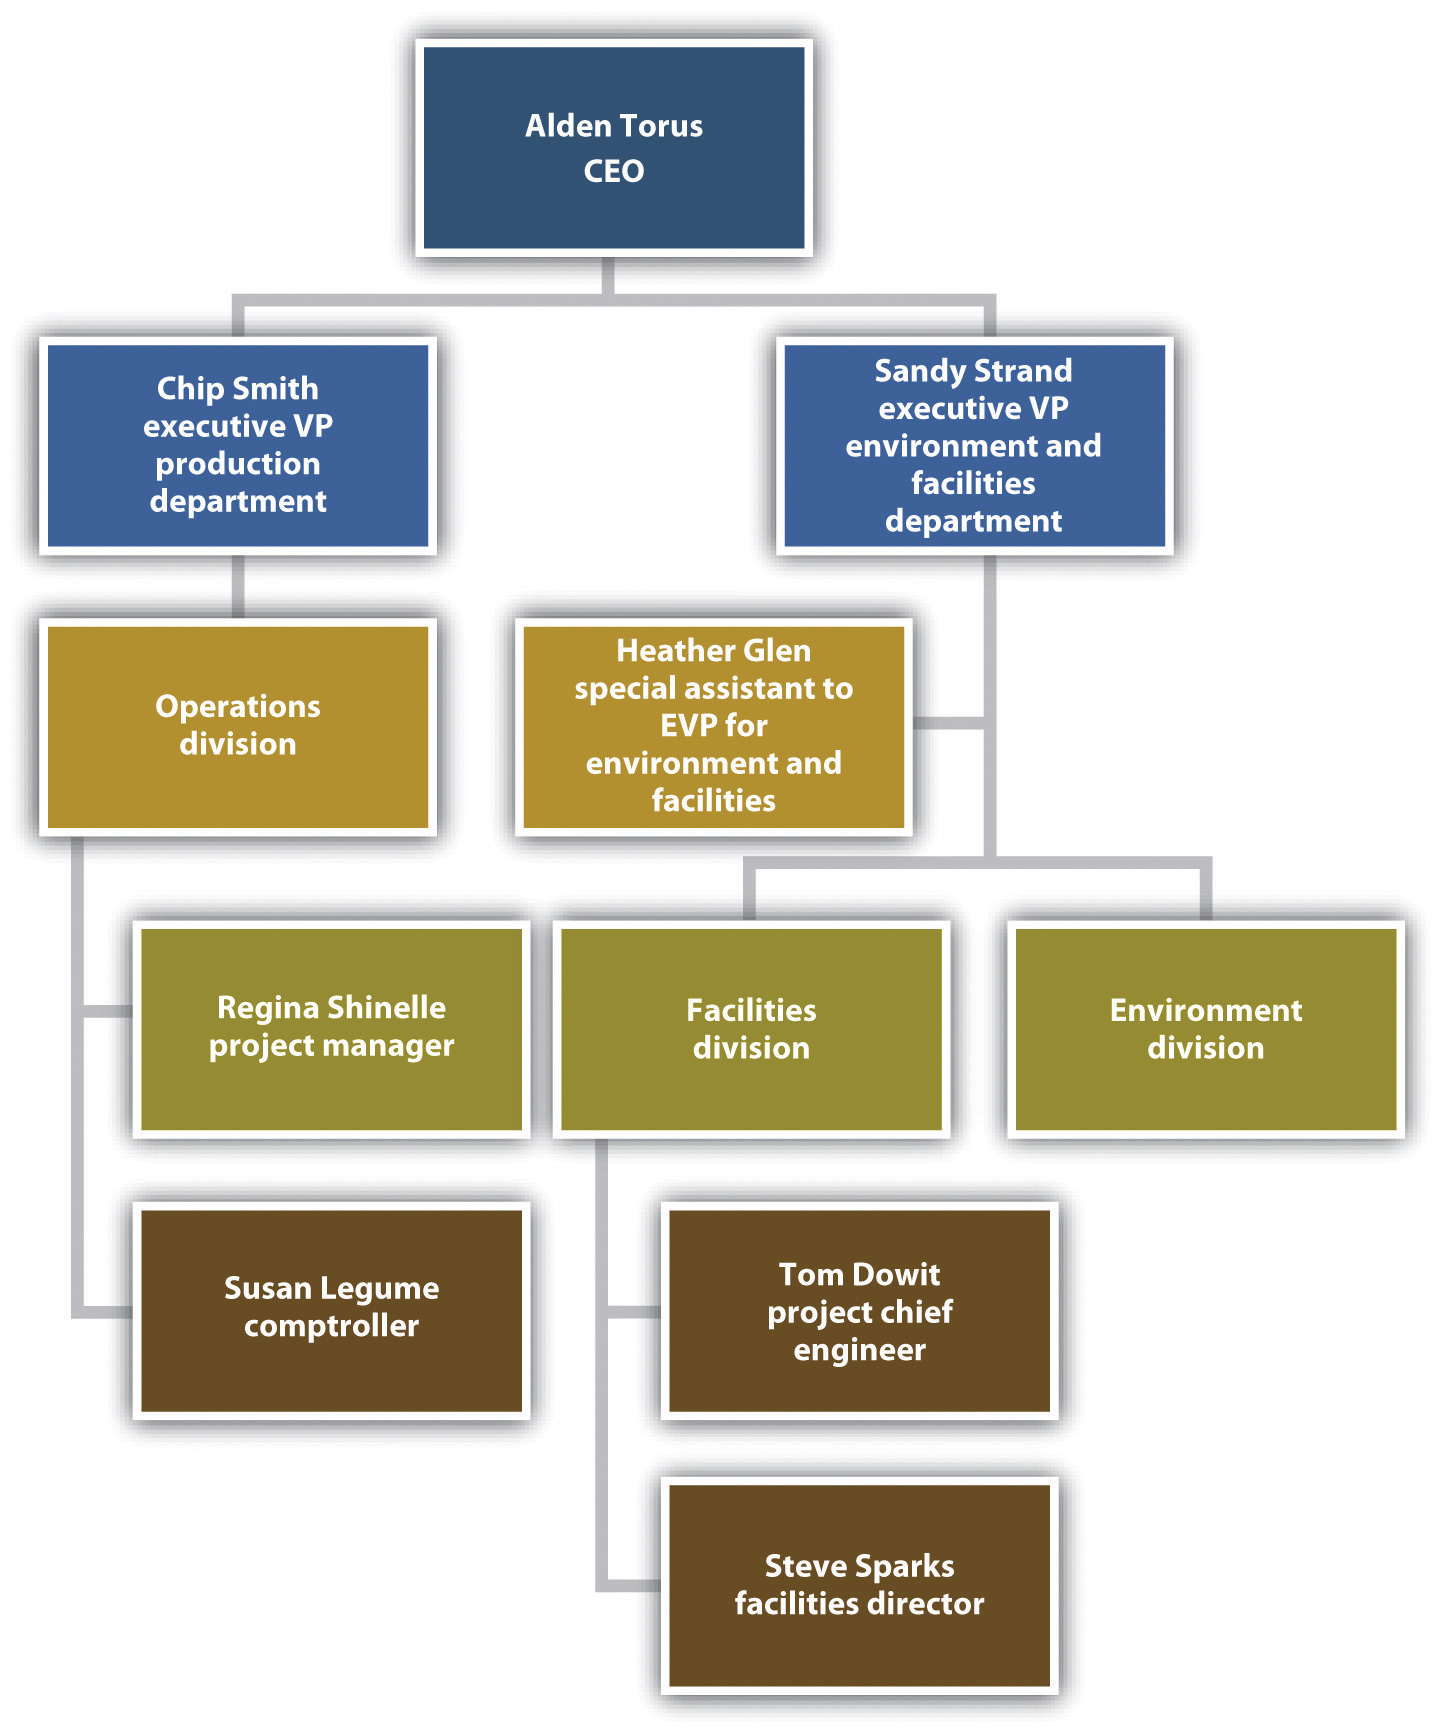 disney organizational structure disney organizational chart creative corporate structure in organisation of the united staes department of agriculture for